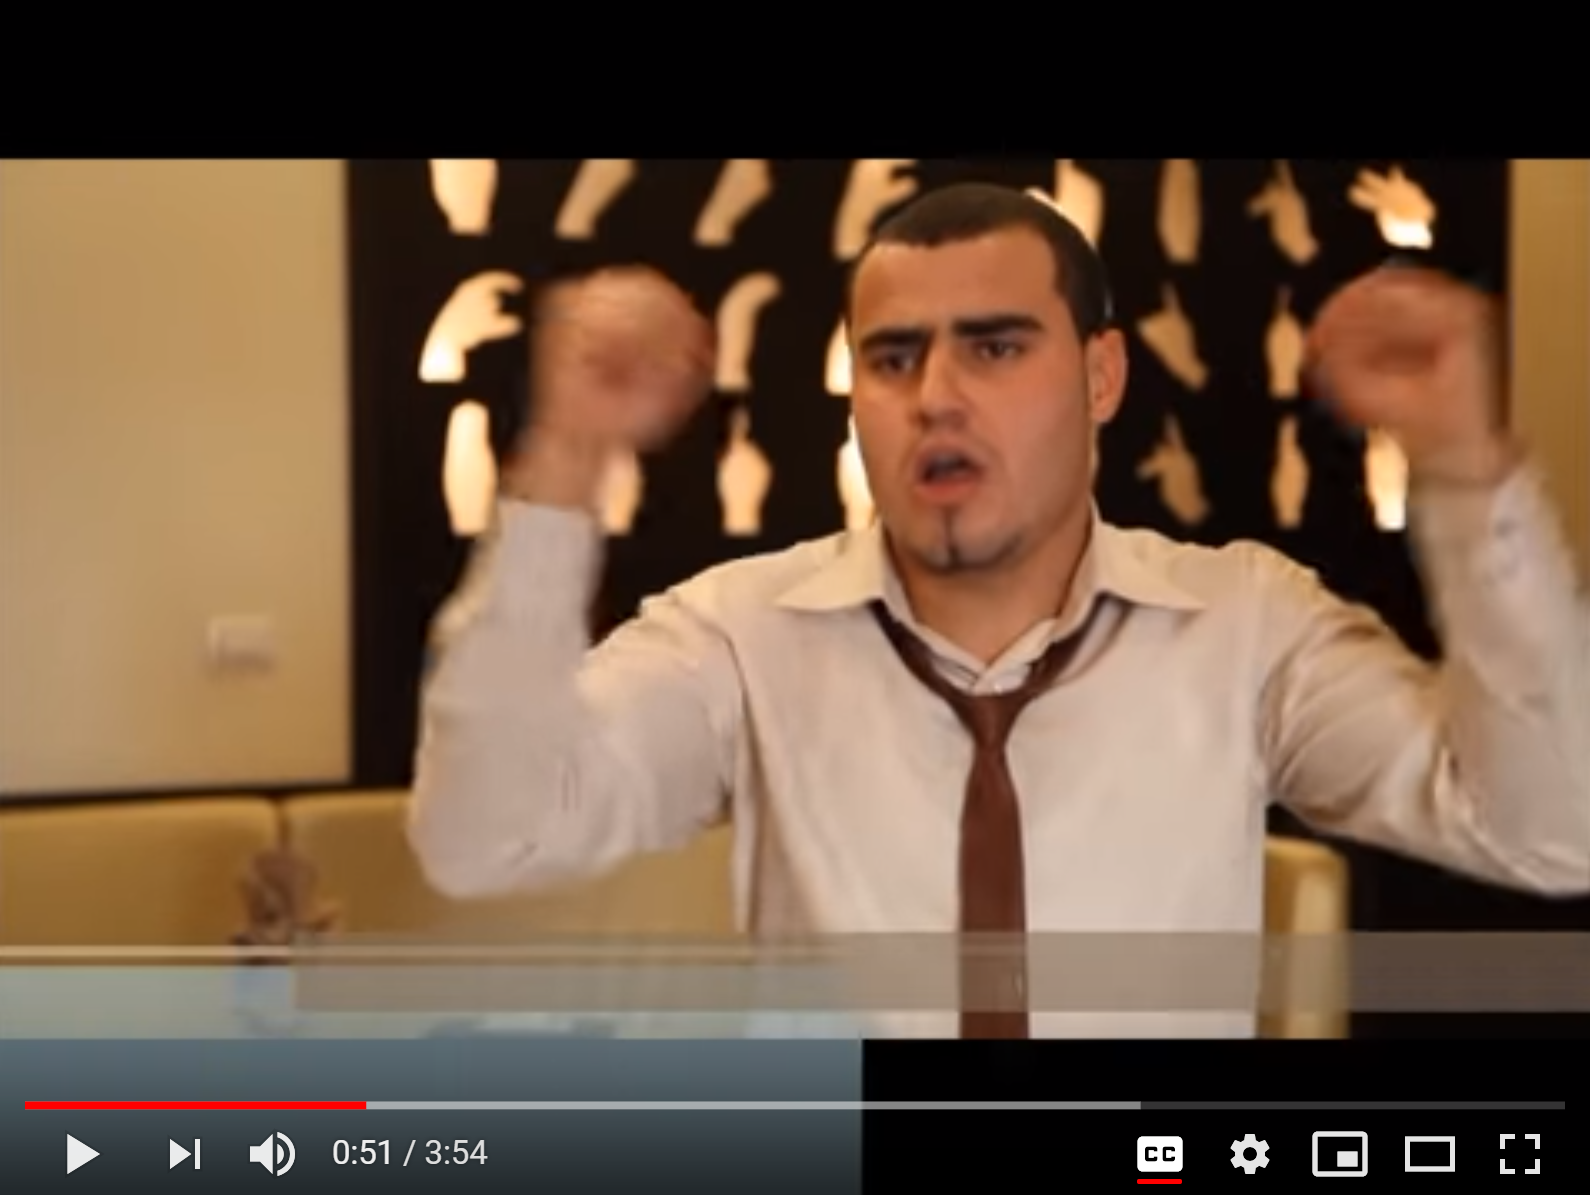 Screenshot taken from a video on deaf equality in Gaza City. Shows a man signing to the camera. Behind him, a tapestry on the wall shows various hand shapes.